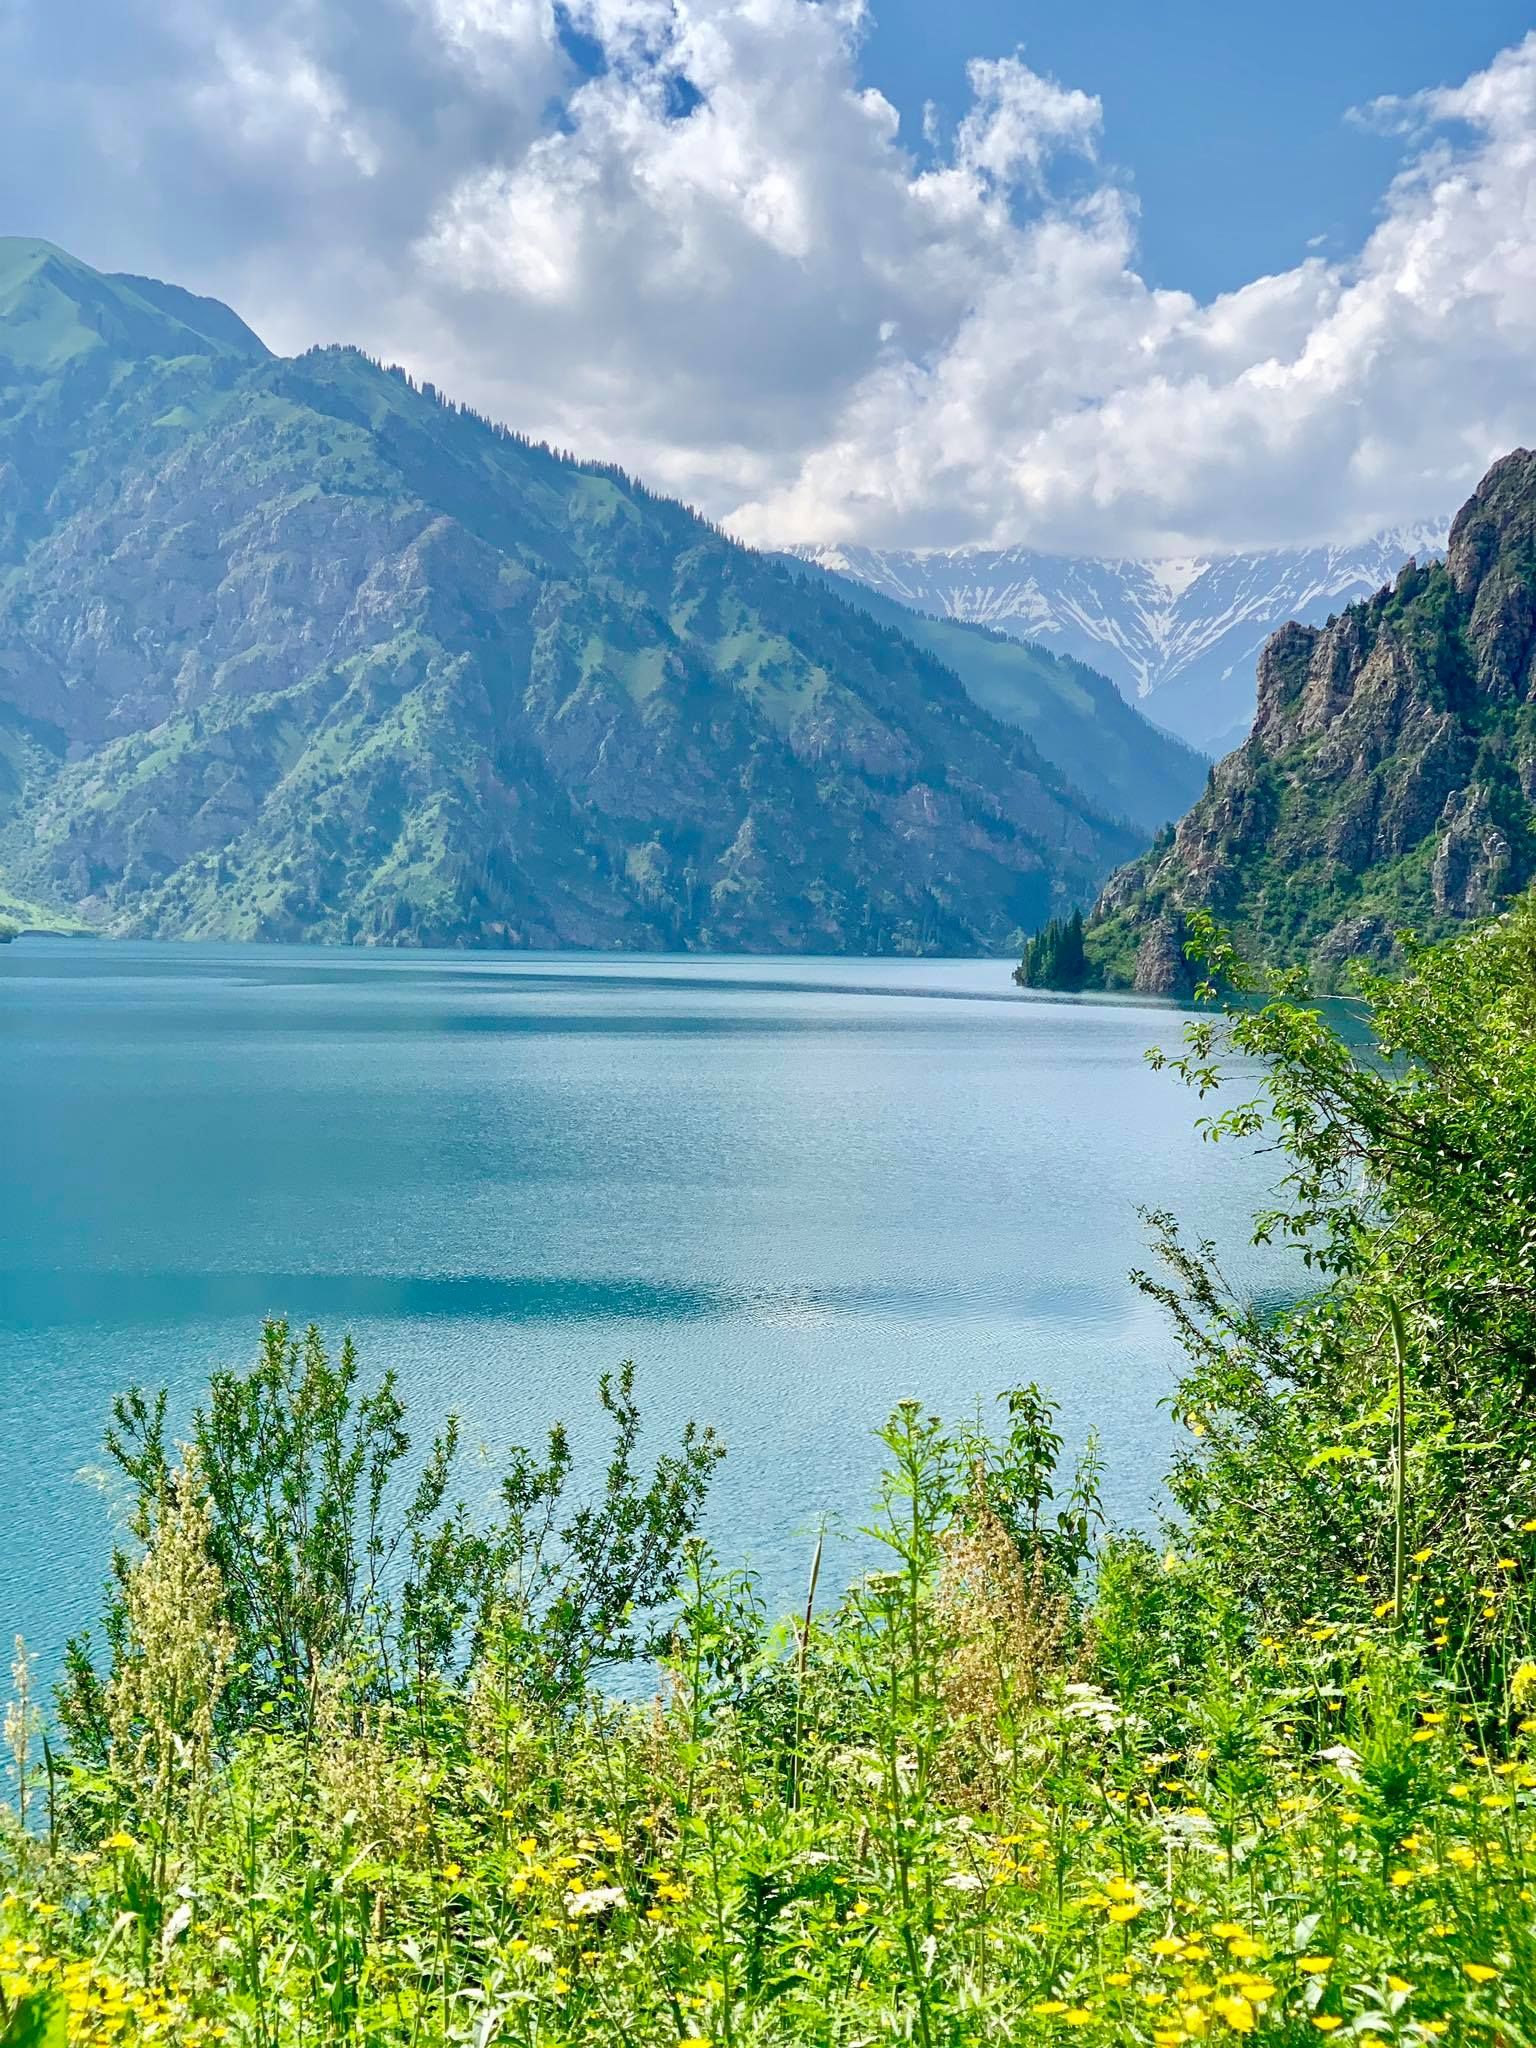 Kach Solo Travels in 2019 Roadtrip to Sary Chelek Lake which is 330 km. from Osh, Kyrgyzstan1.jpg